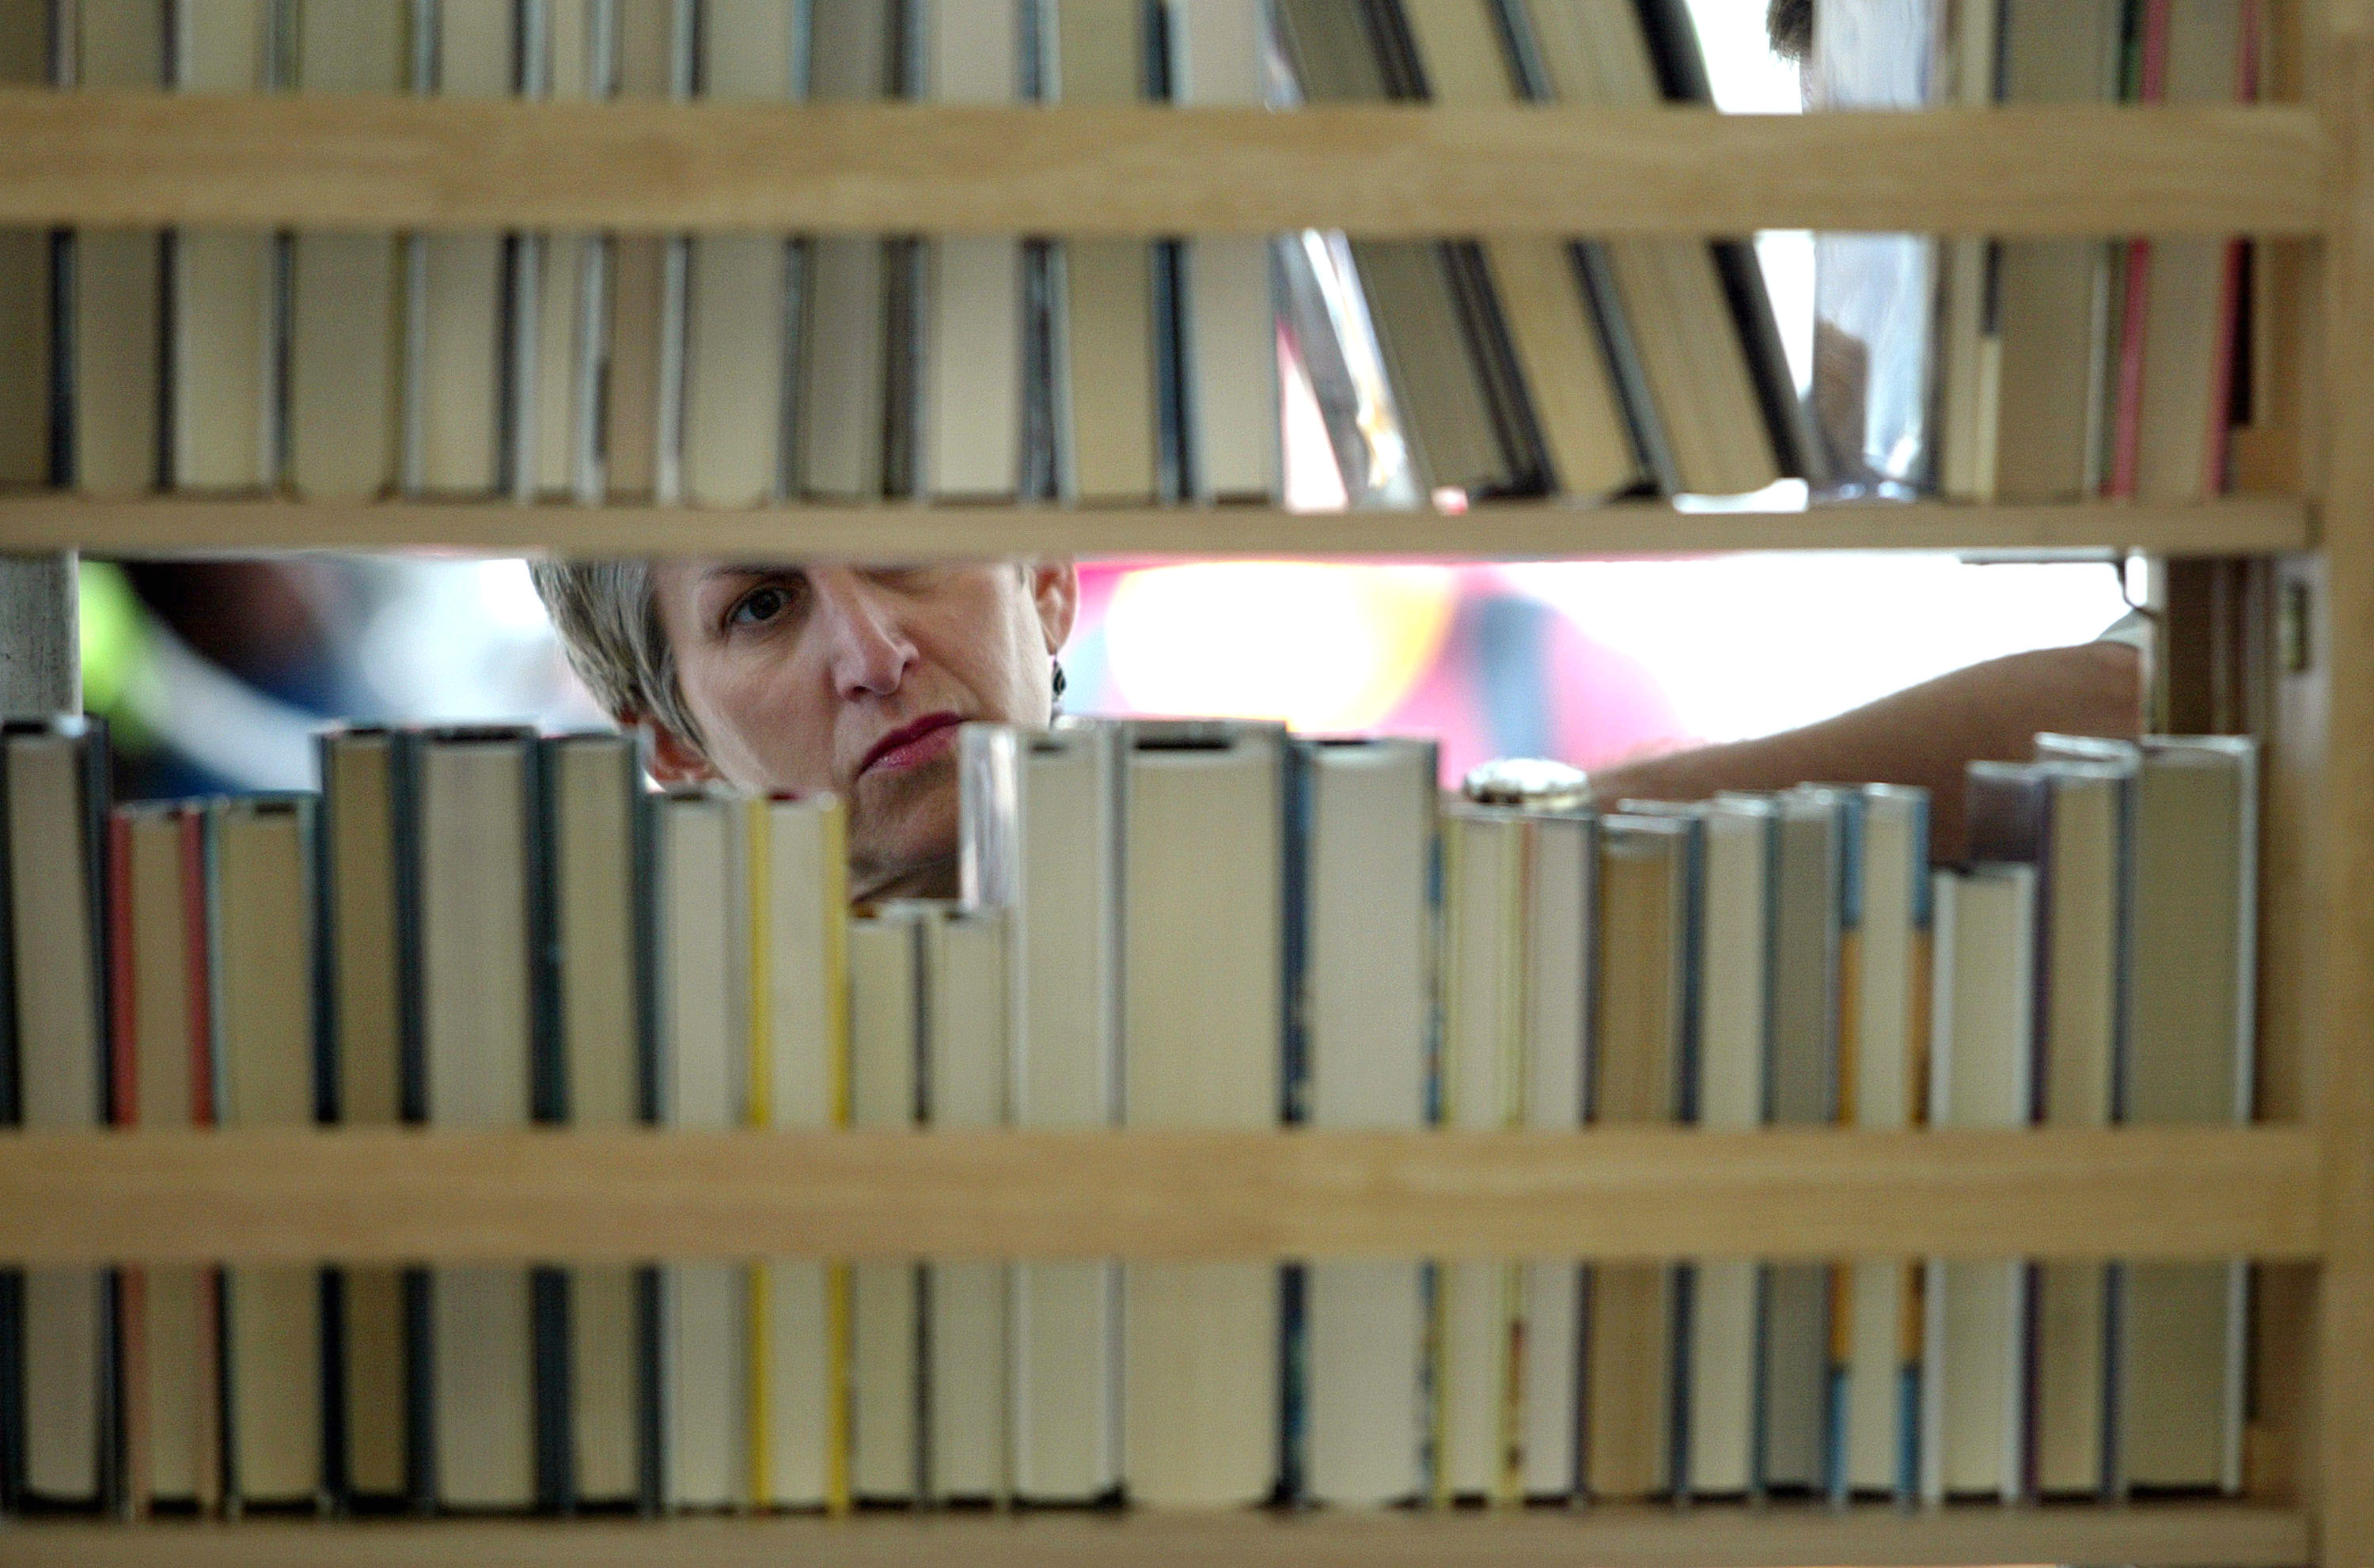 Bentonville Library To Hold Massive Used Book Sale After Receiving Estate Donation